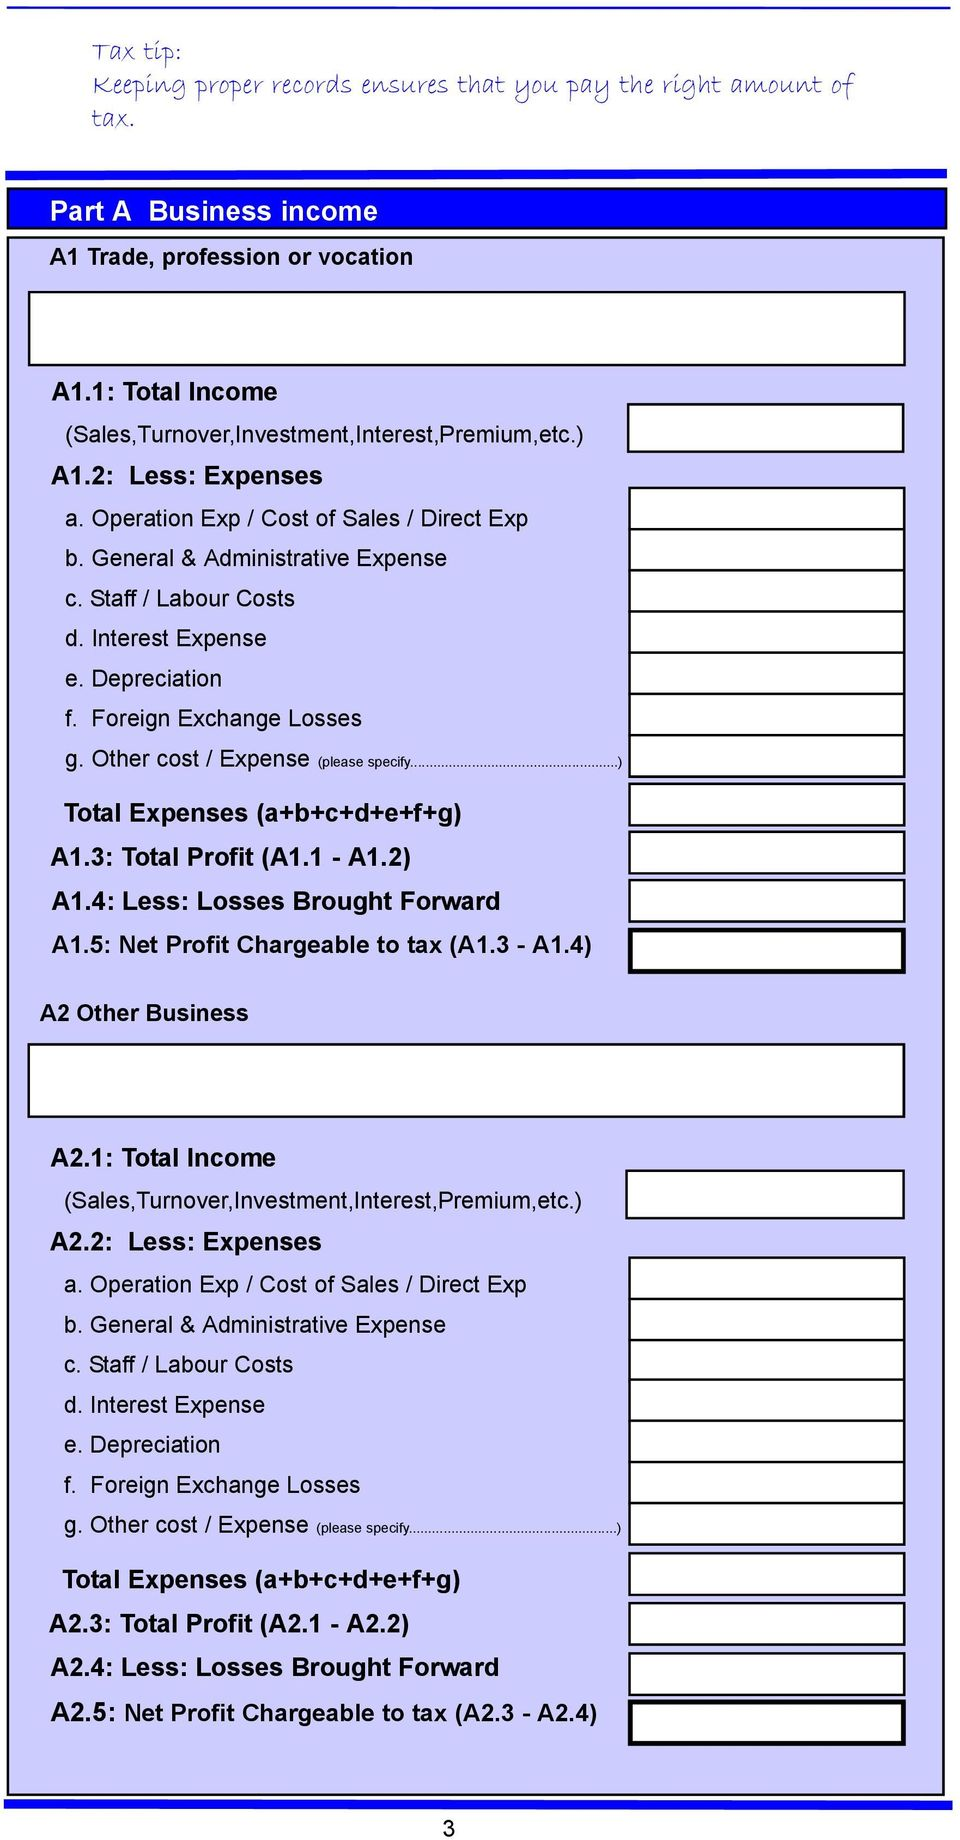 Interest Expense e. Depreciation f. Foreign Exchange Losses g. Other cost / Expense (please specify...) Total Expenses (a+b+c+d+e+f+g) A1.3: Total Profit (A1.1 - A1.2) A1.